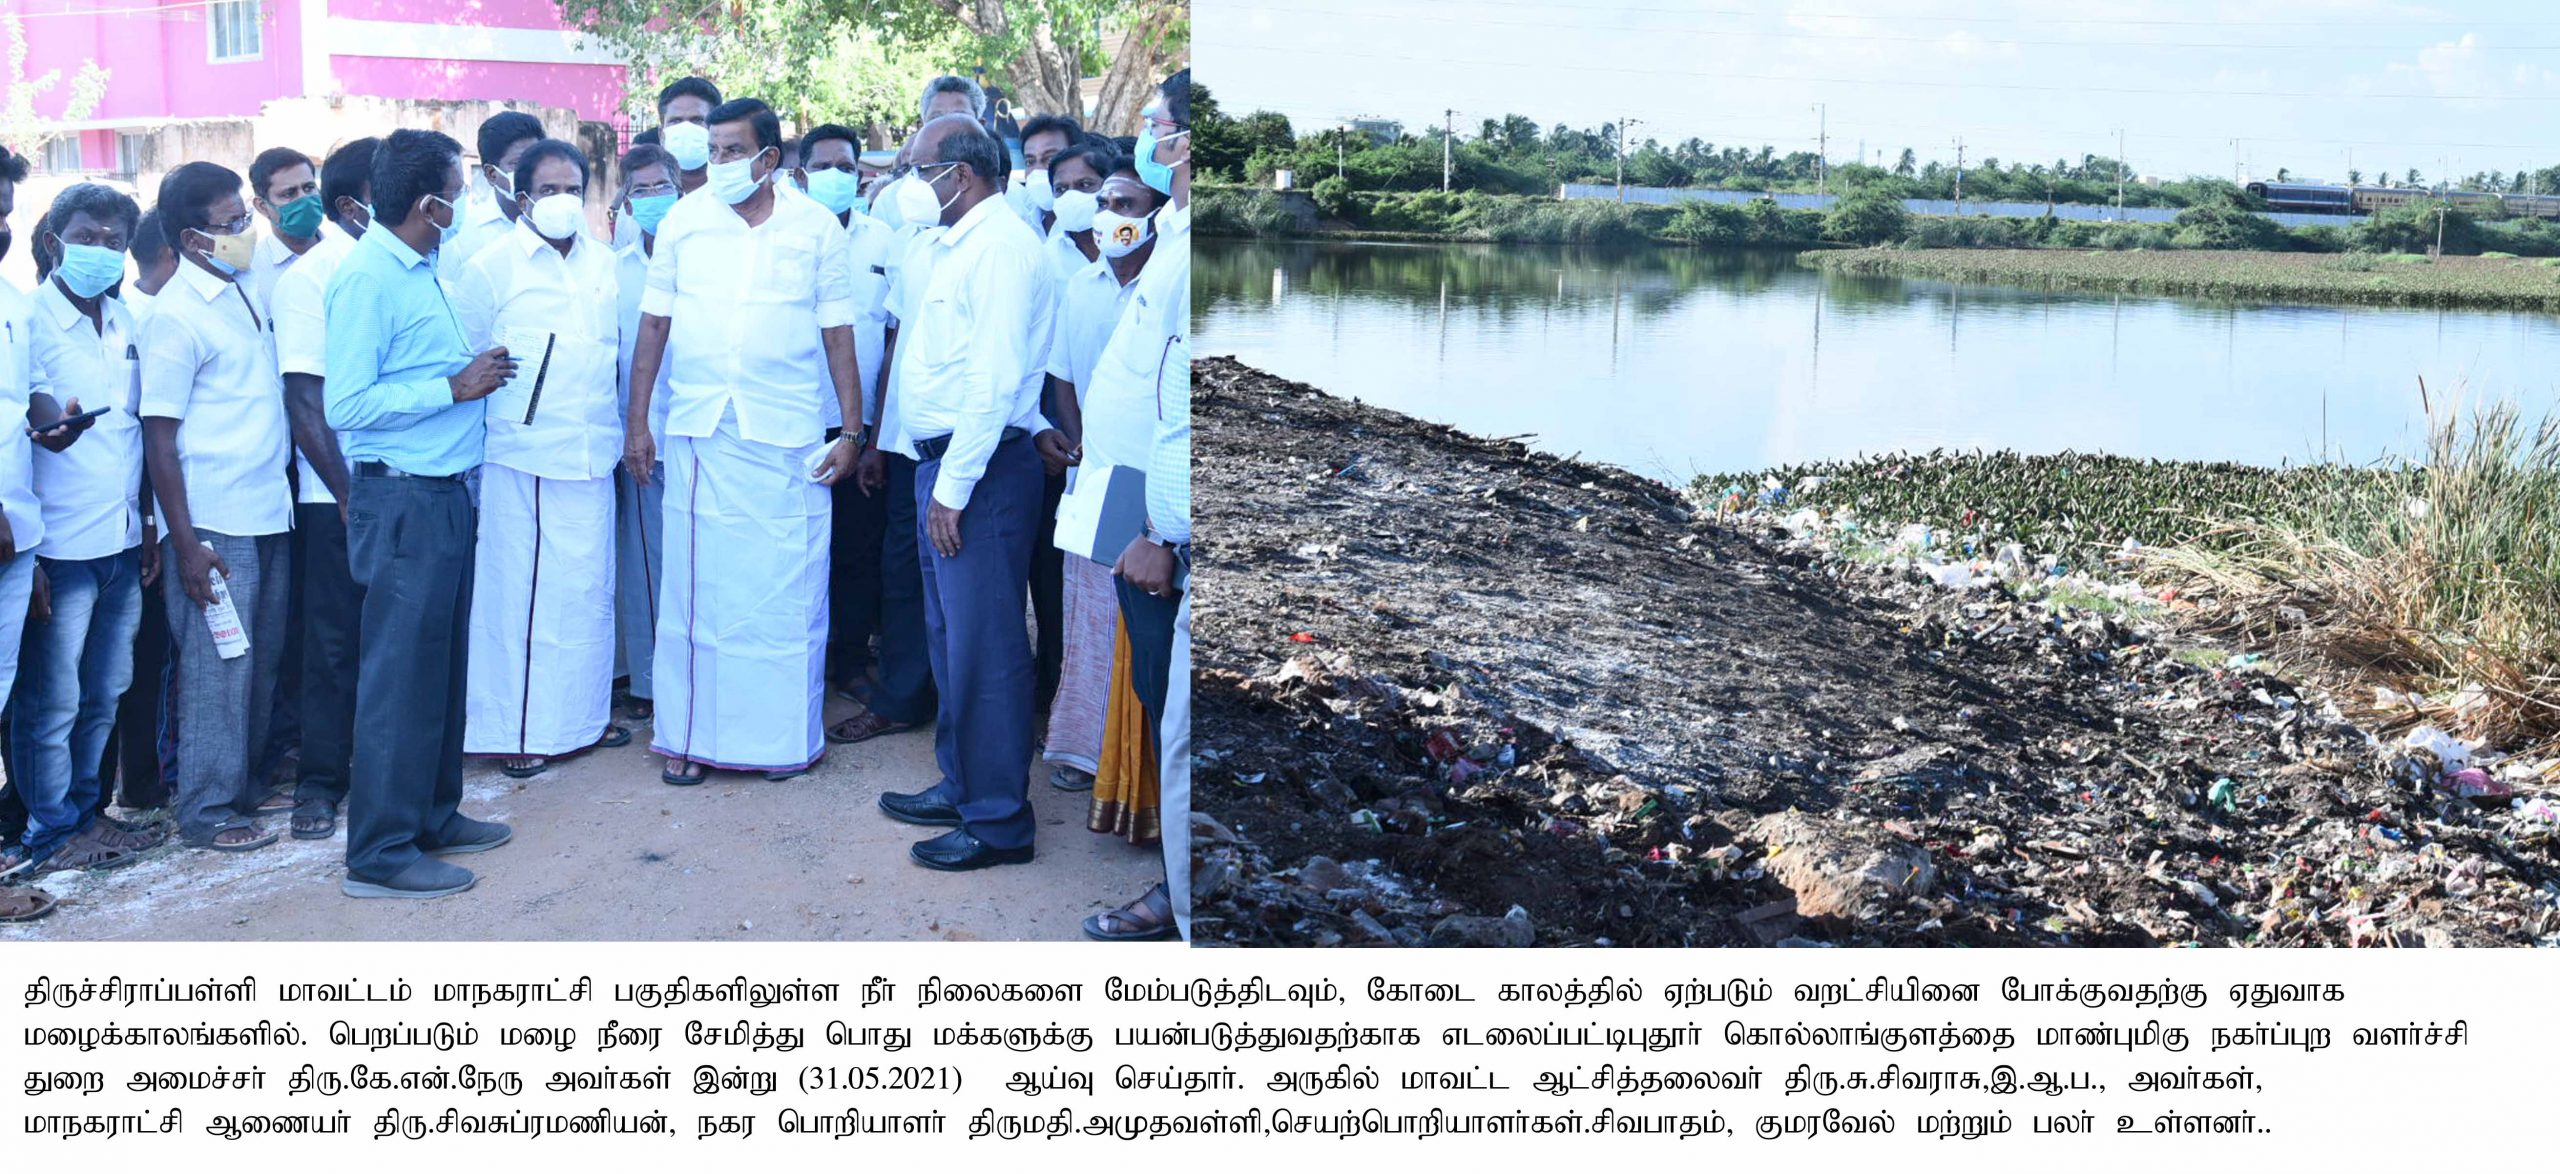 Hon'ble Urban Development Minister Inspected the Water bodies in corporation area on 31.05.2021